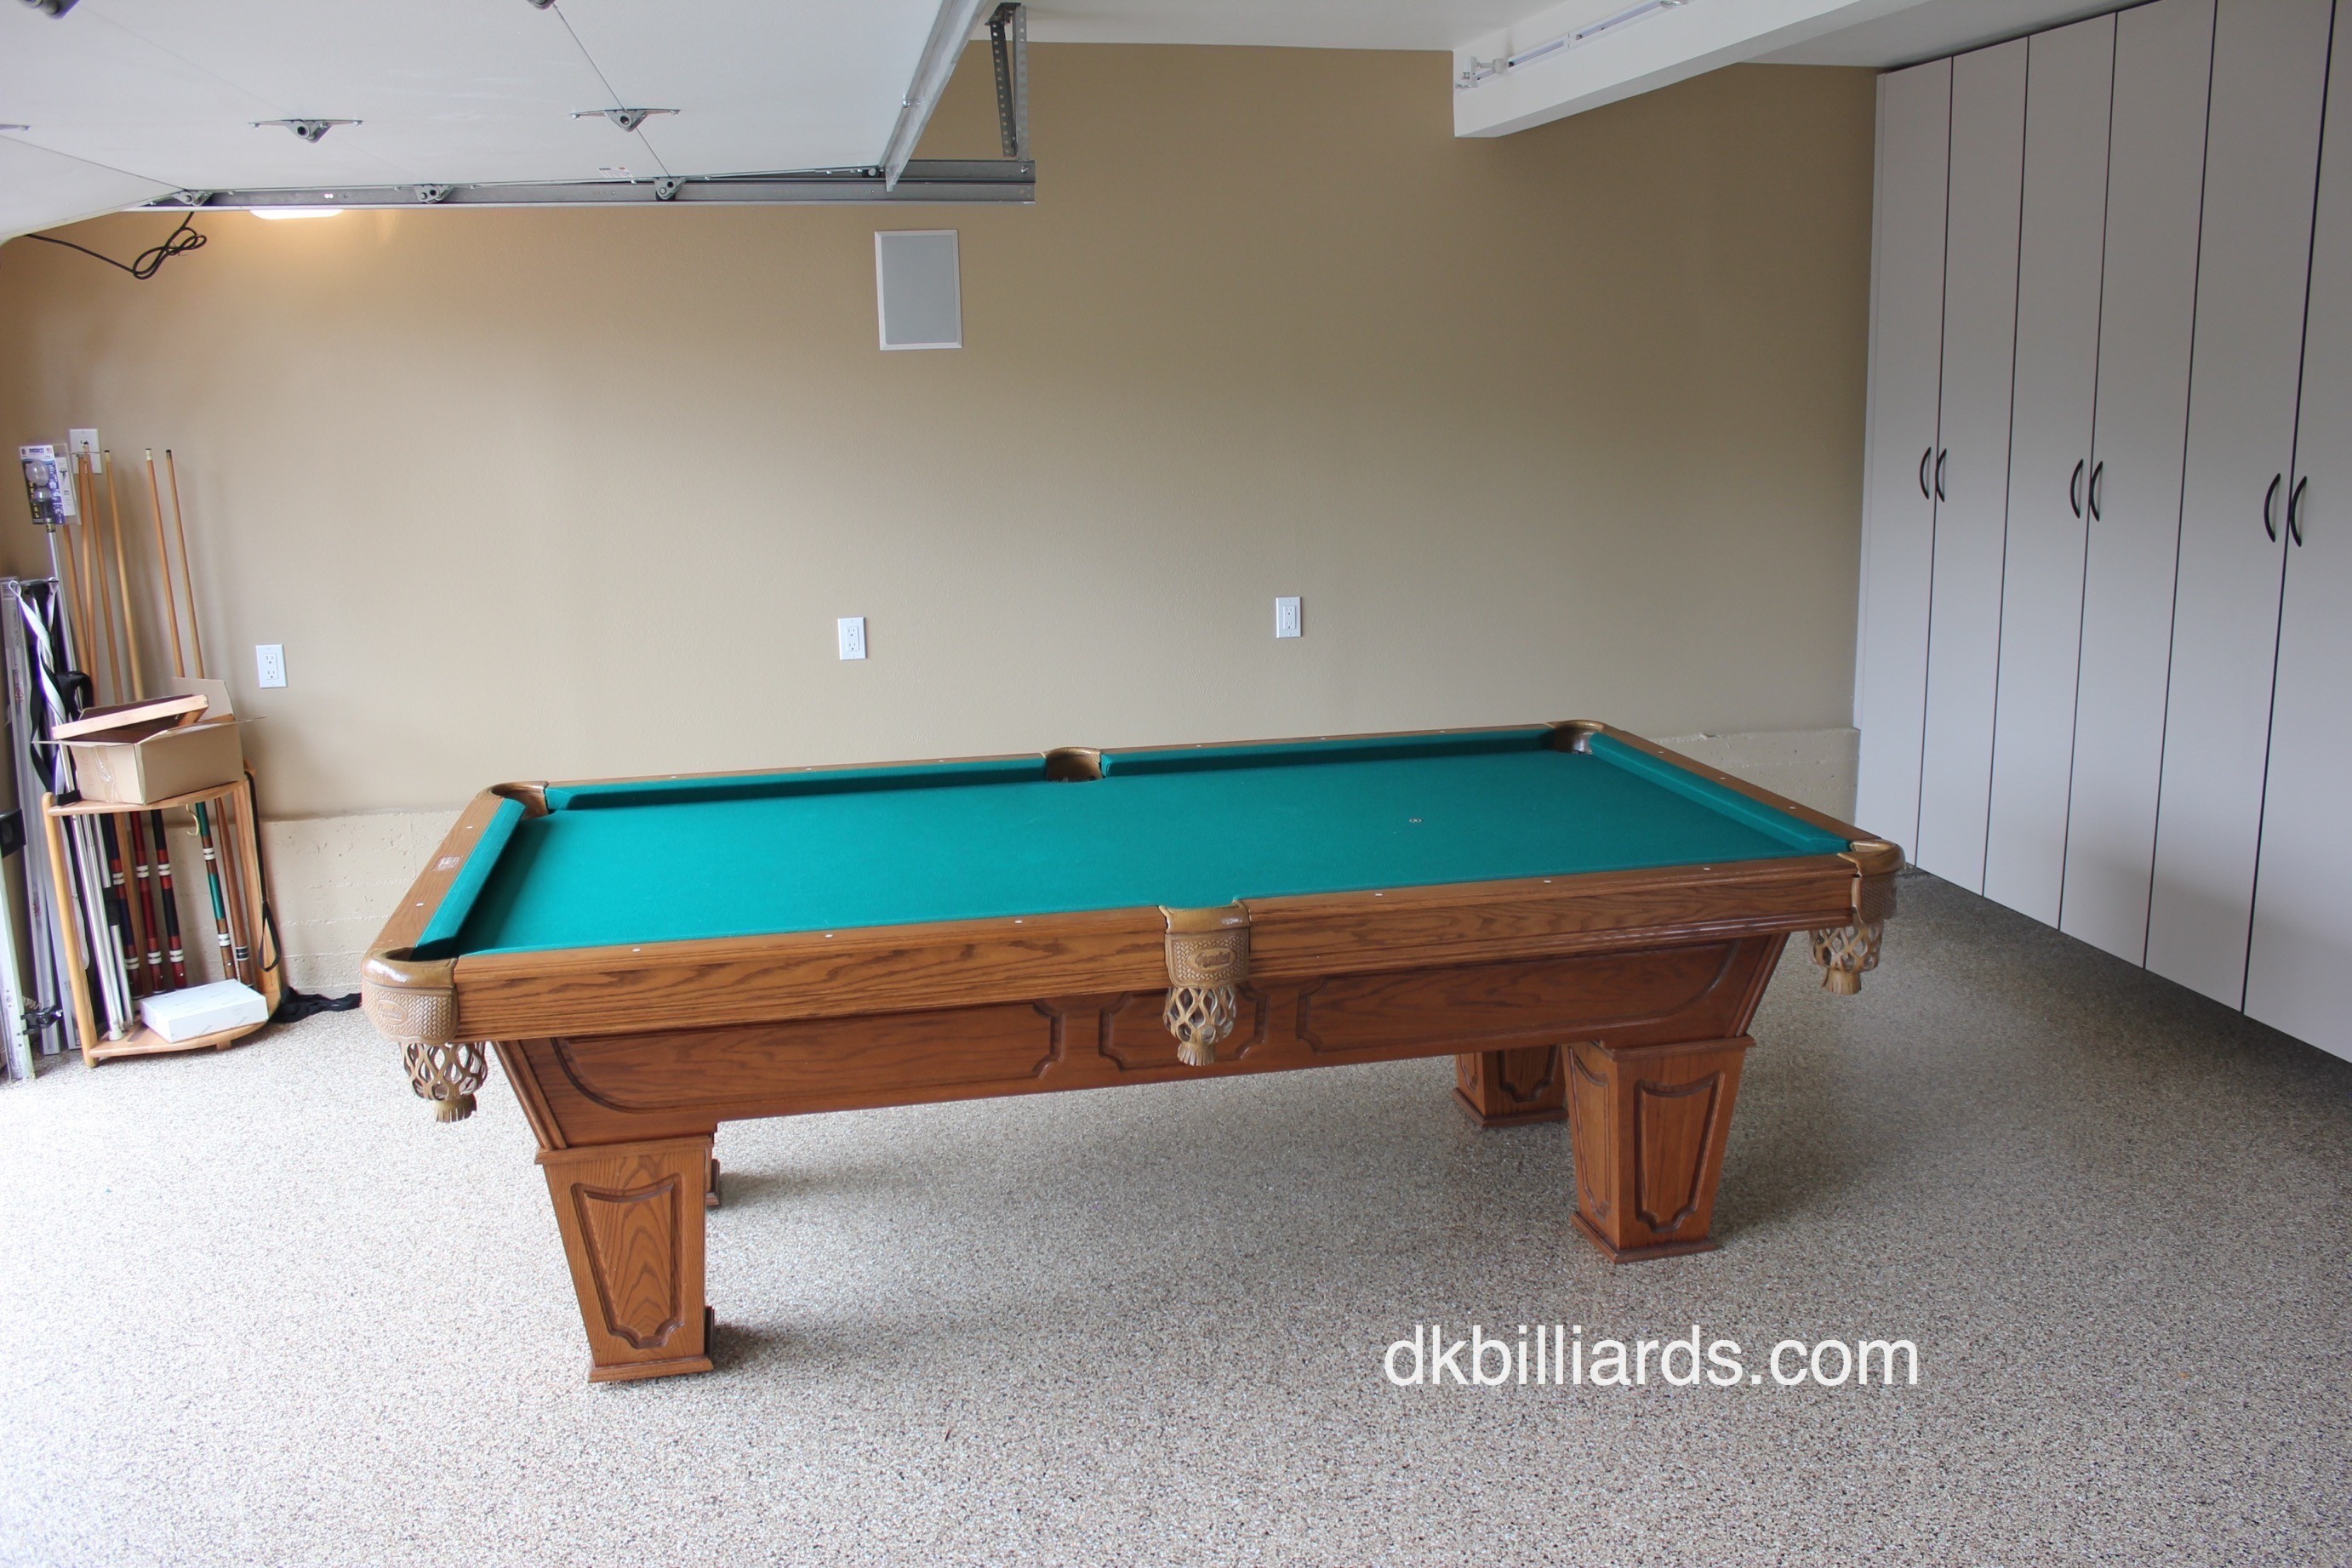 This Newport Beach, California Garage Was Prepped With New (and Dry) Epoxy  Floors And Ready For Us To Install This 8u2032 Camelot Pool Table.